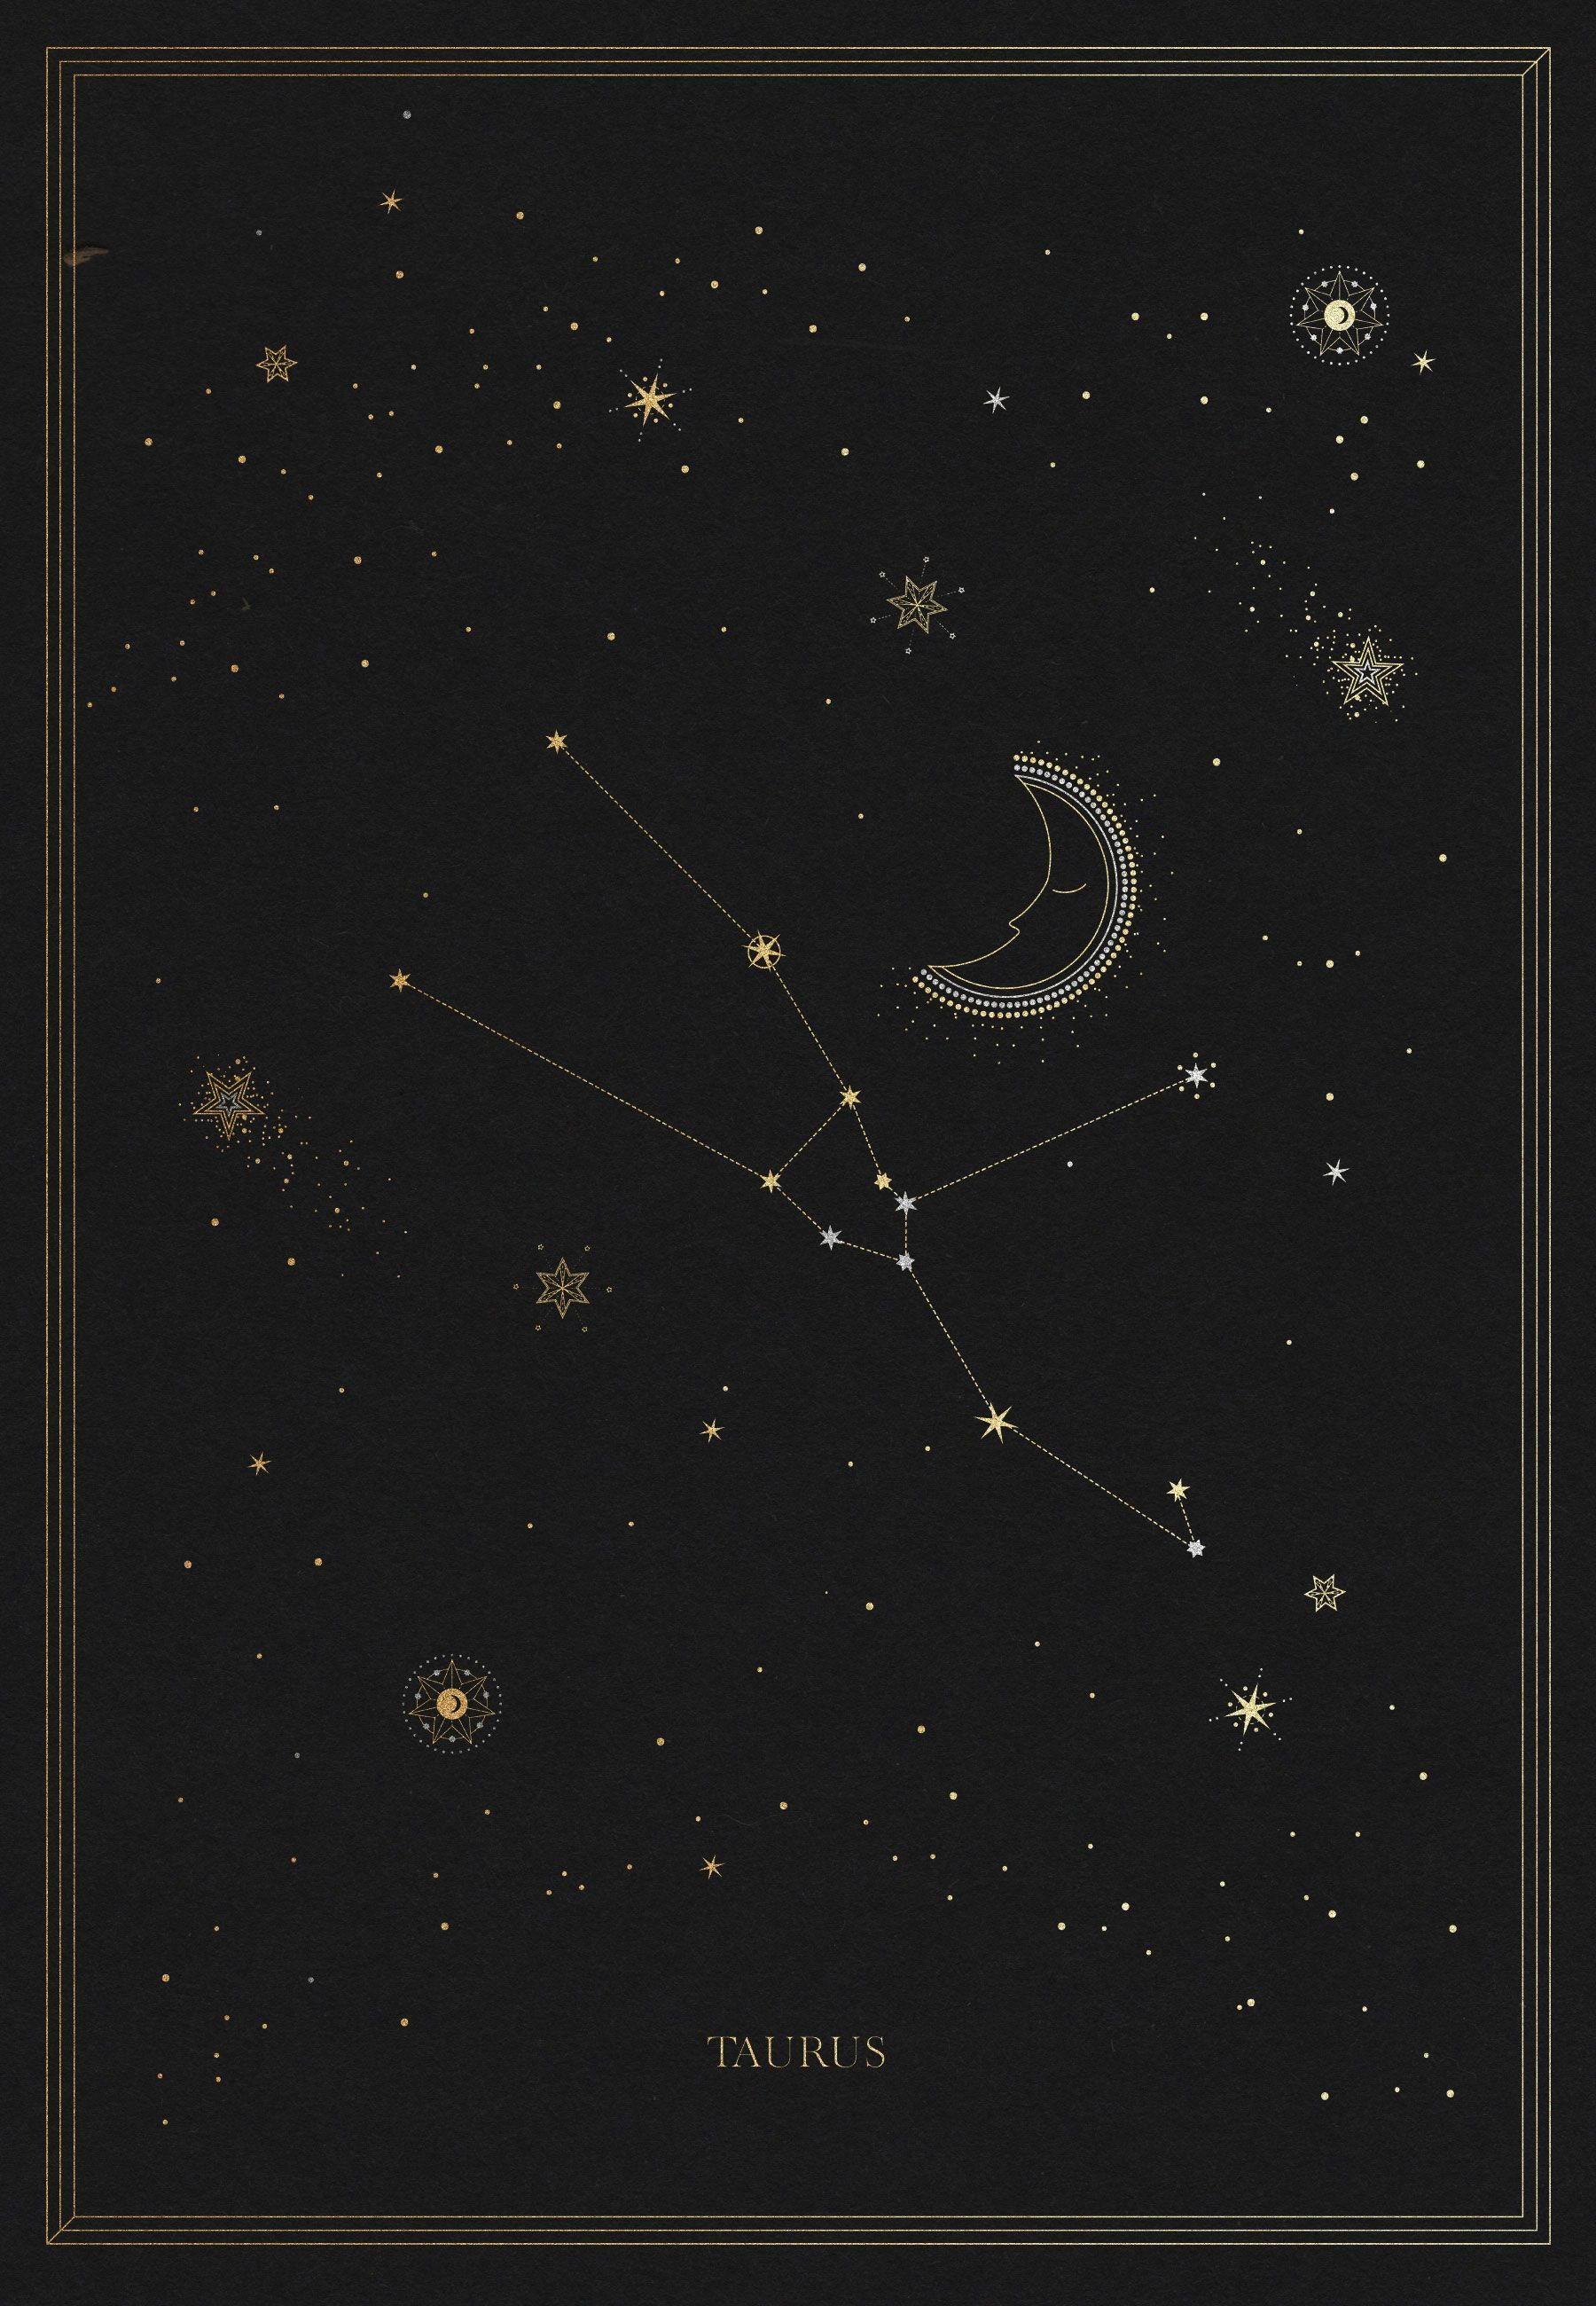 1800x2600 The Taurus Constellation | Design | Taurus constellation ...